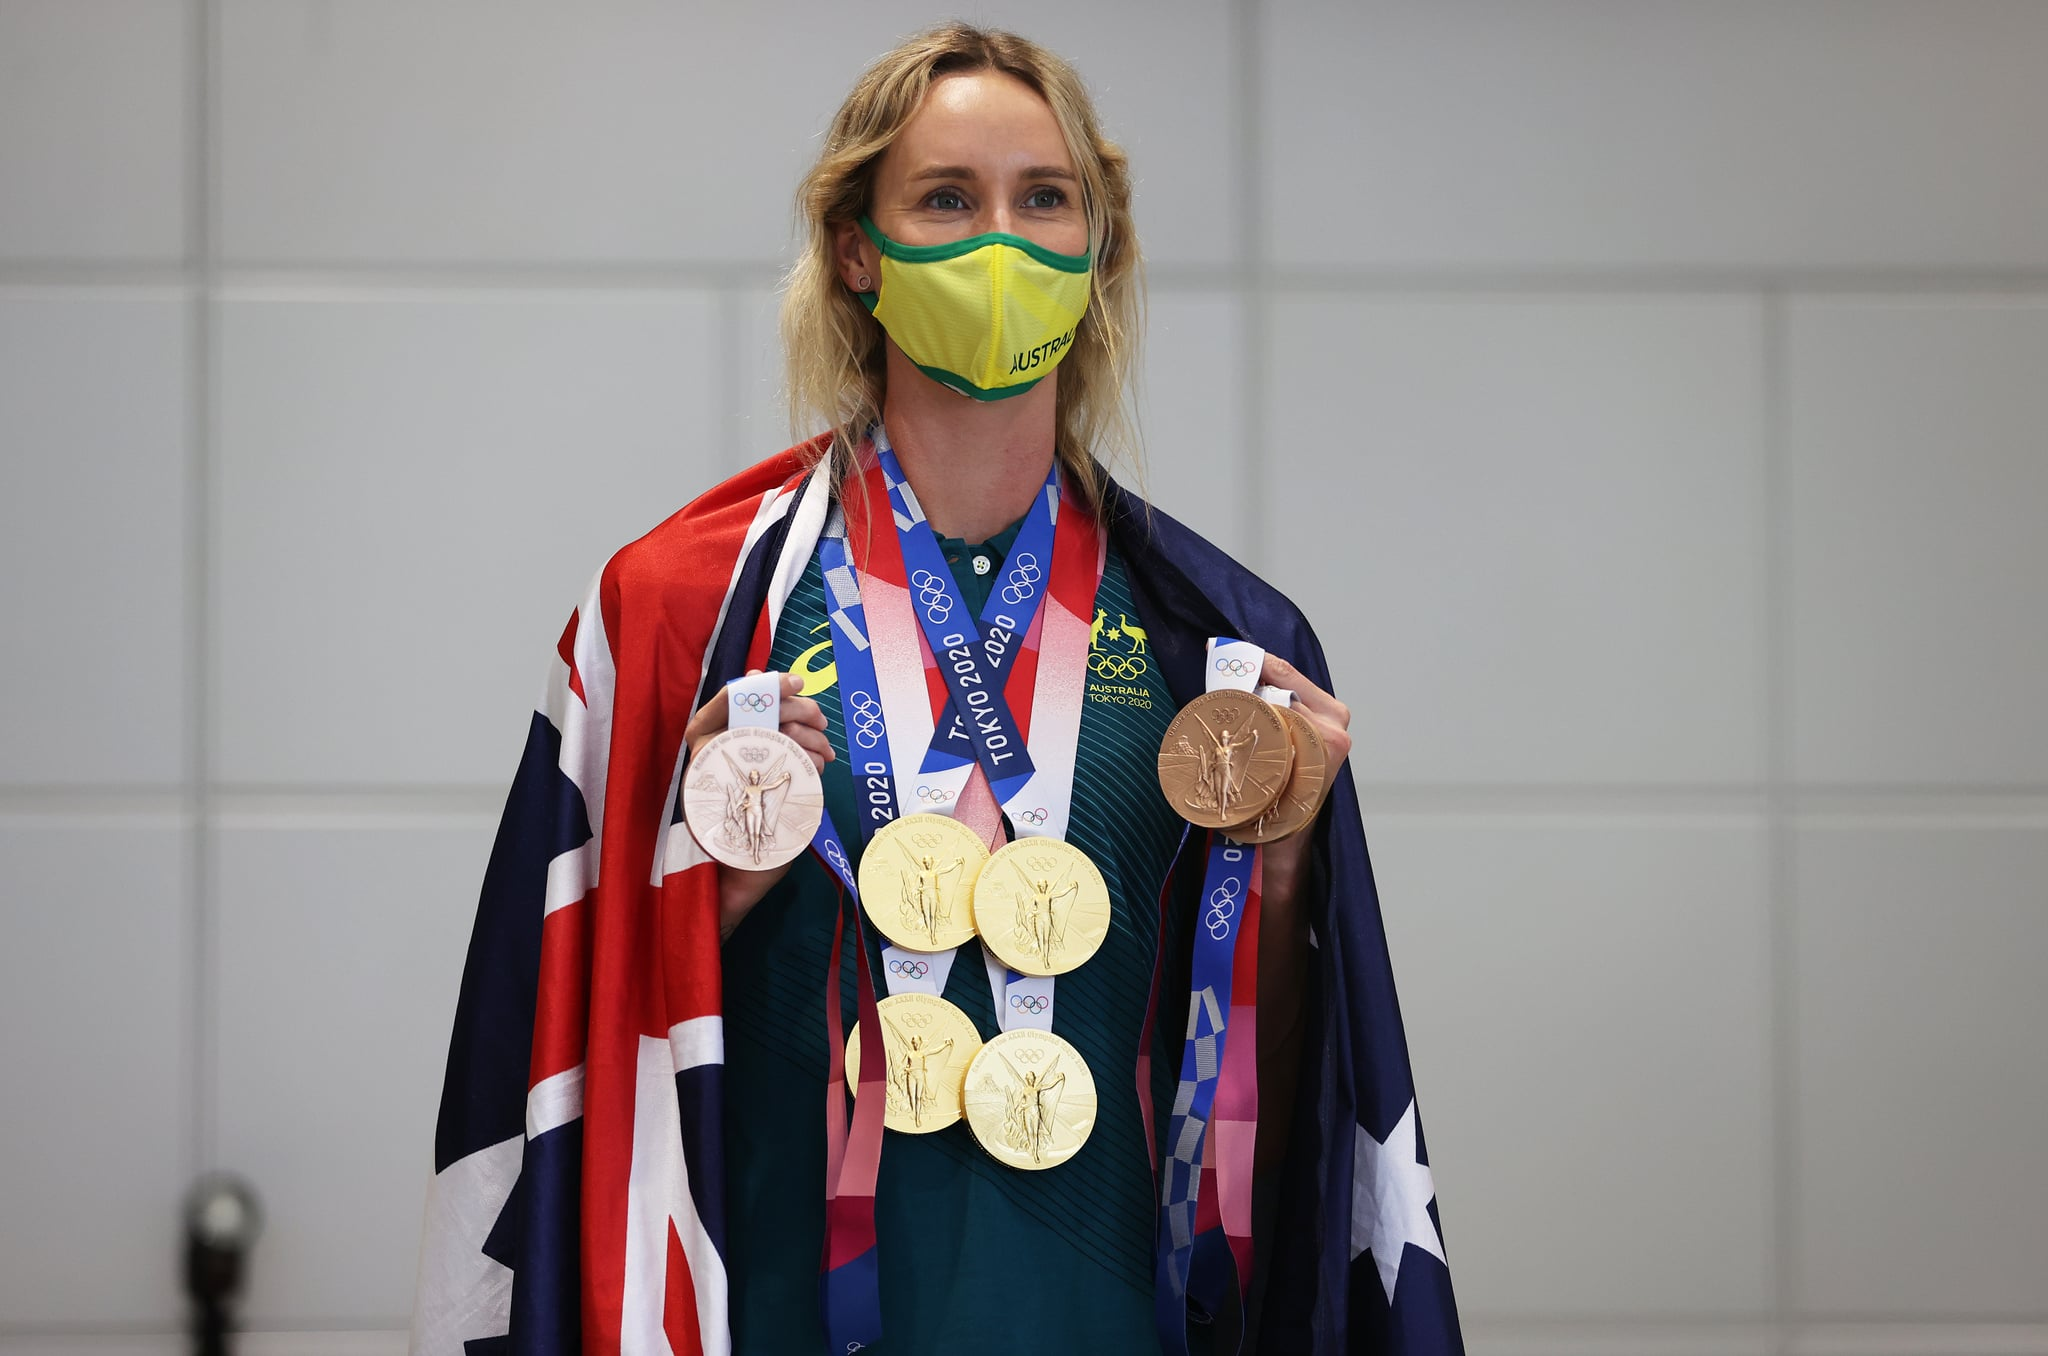 TOKYO, JAPAN - AUGUST 02: Emma McKeon of Team Australia poses for a photo with her seven Olympics medals after the Australian Swimming Medallist press conference on day ten of the Tokyo Olympic Games on August 02, 2021 in Tokyo, Japan. (Photo by James Chance/Getty Images)